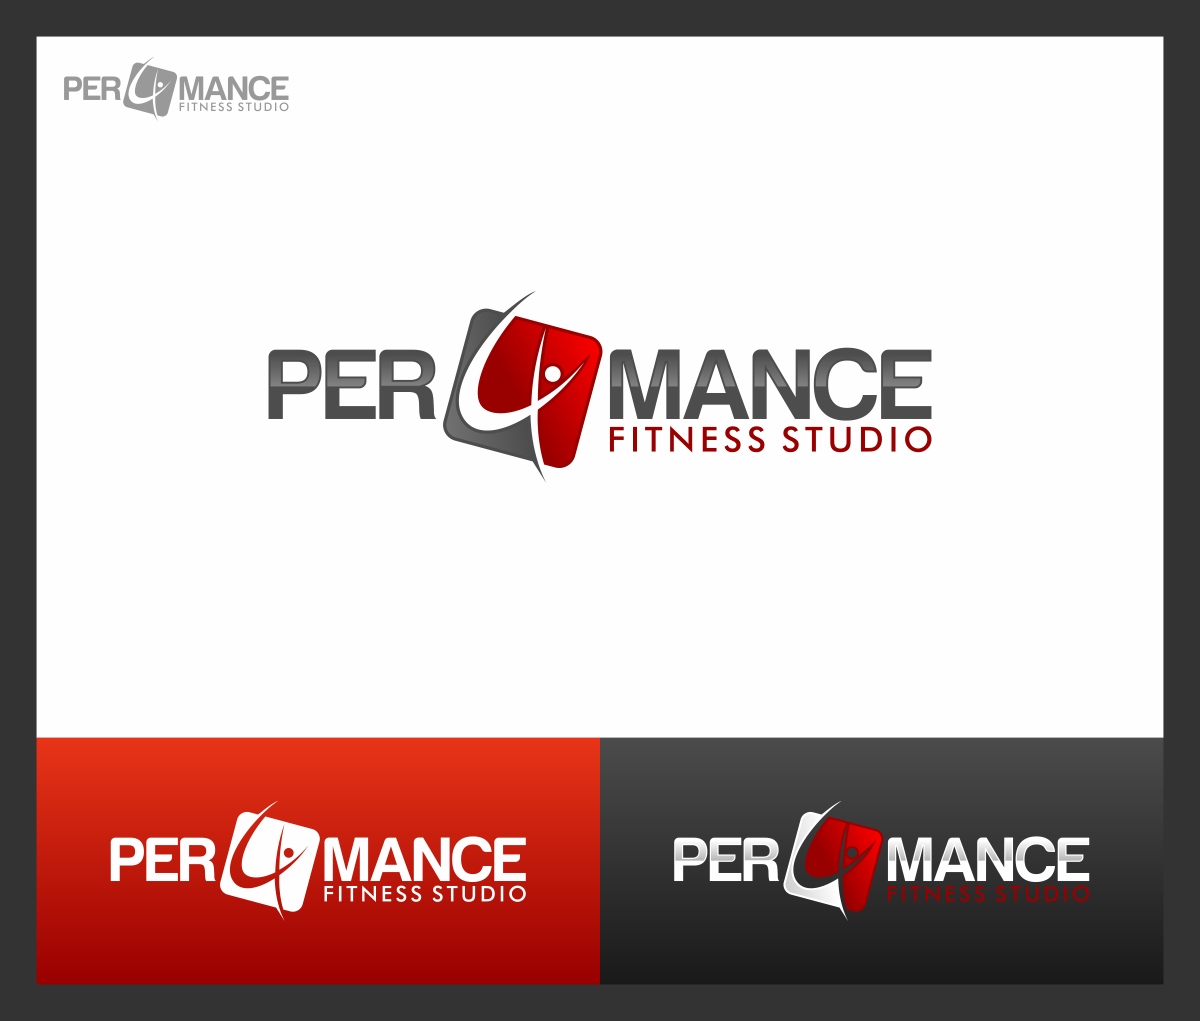 Help Per4mance Fitness Studio with a new logo